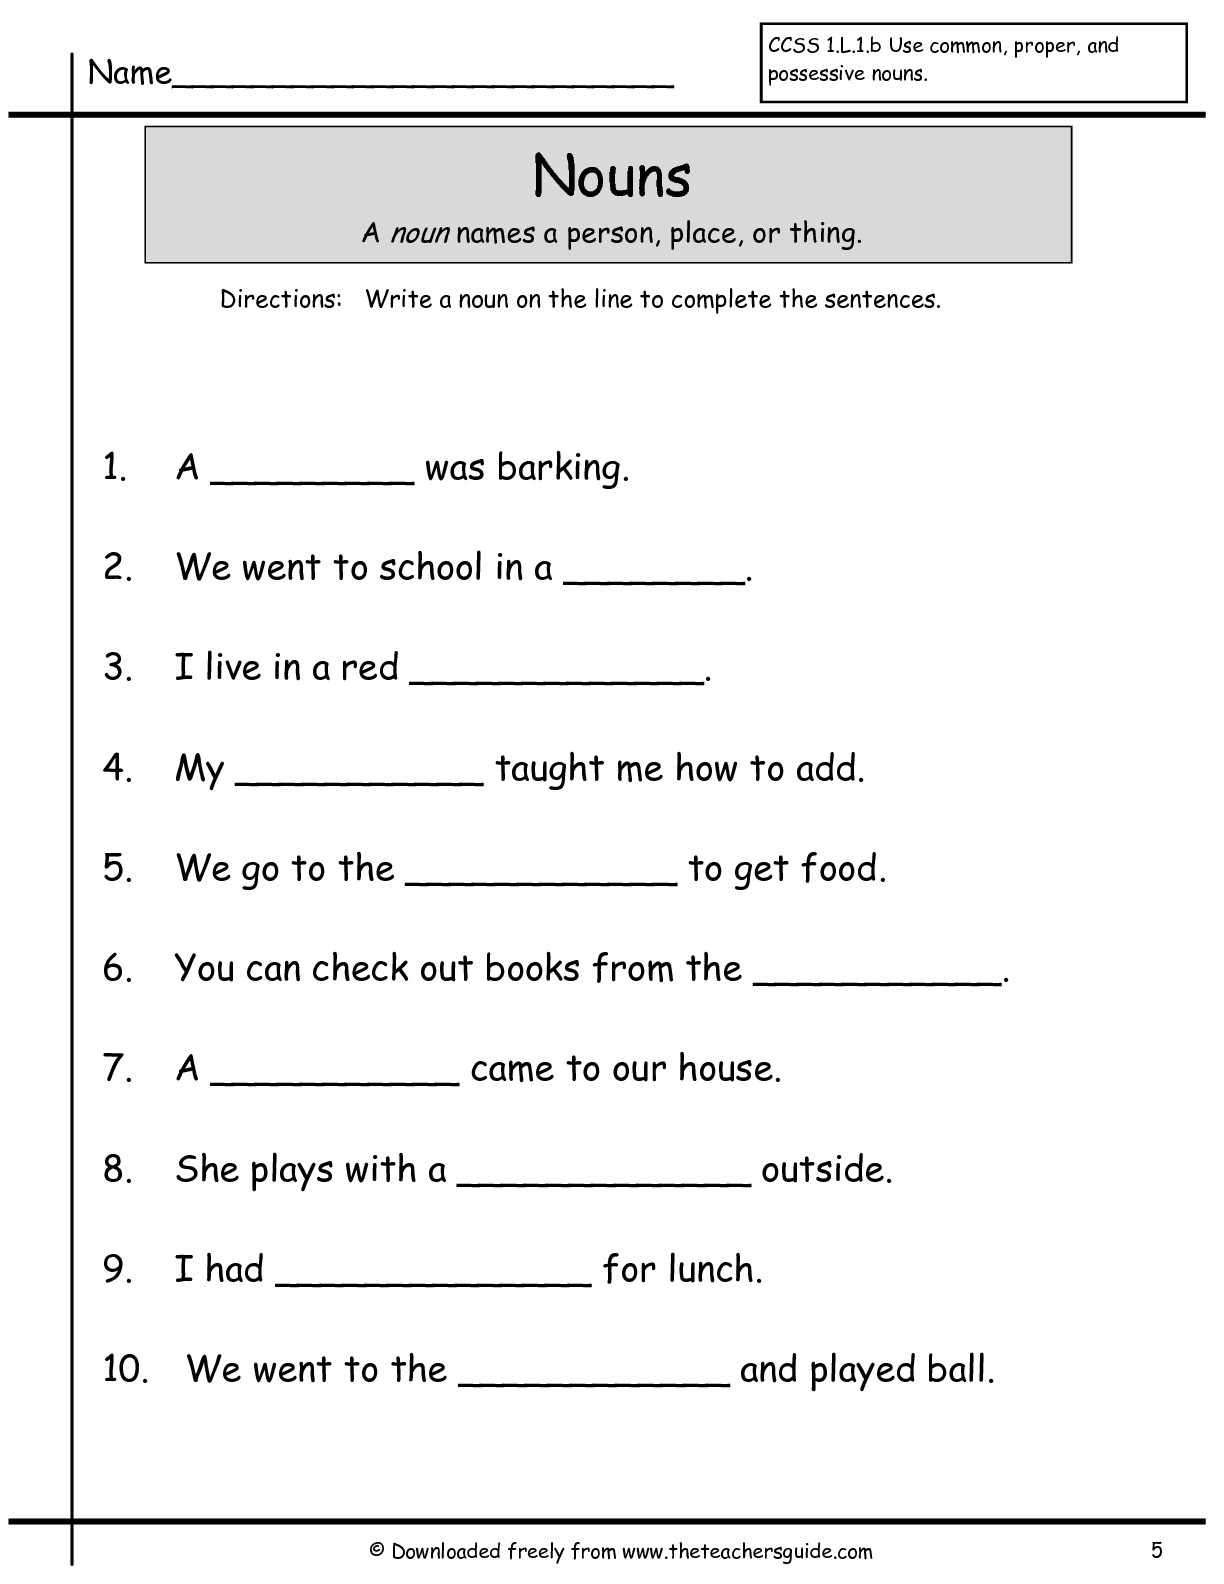 Printables Printable 1st Grade Reading Worksheets printables first grade reading printable worksheets 8 best images of games 1st